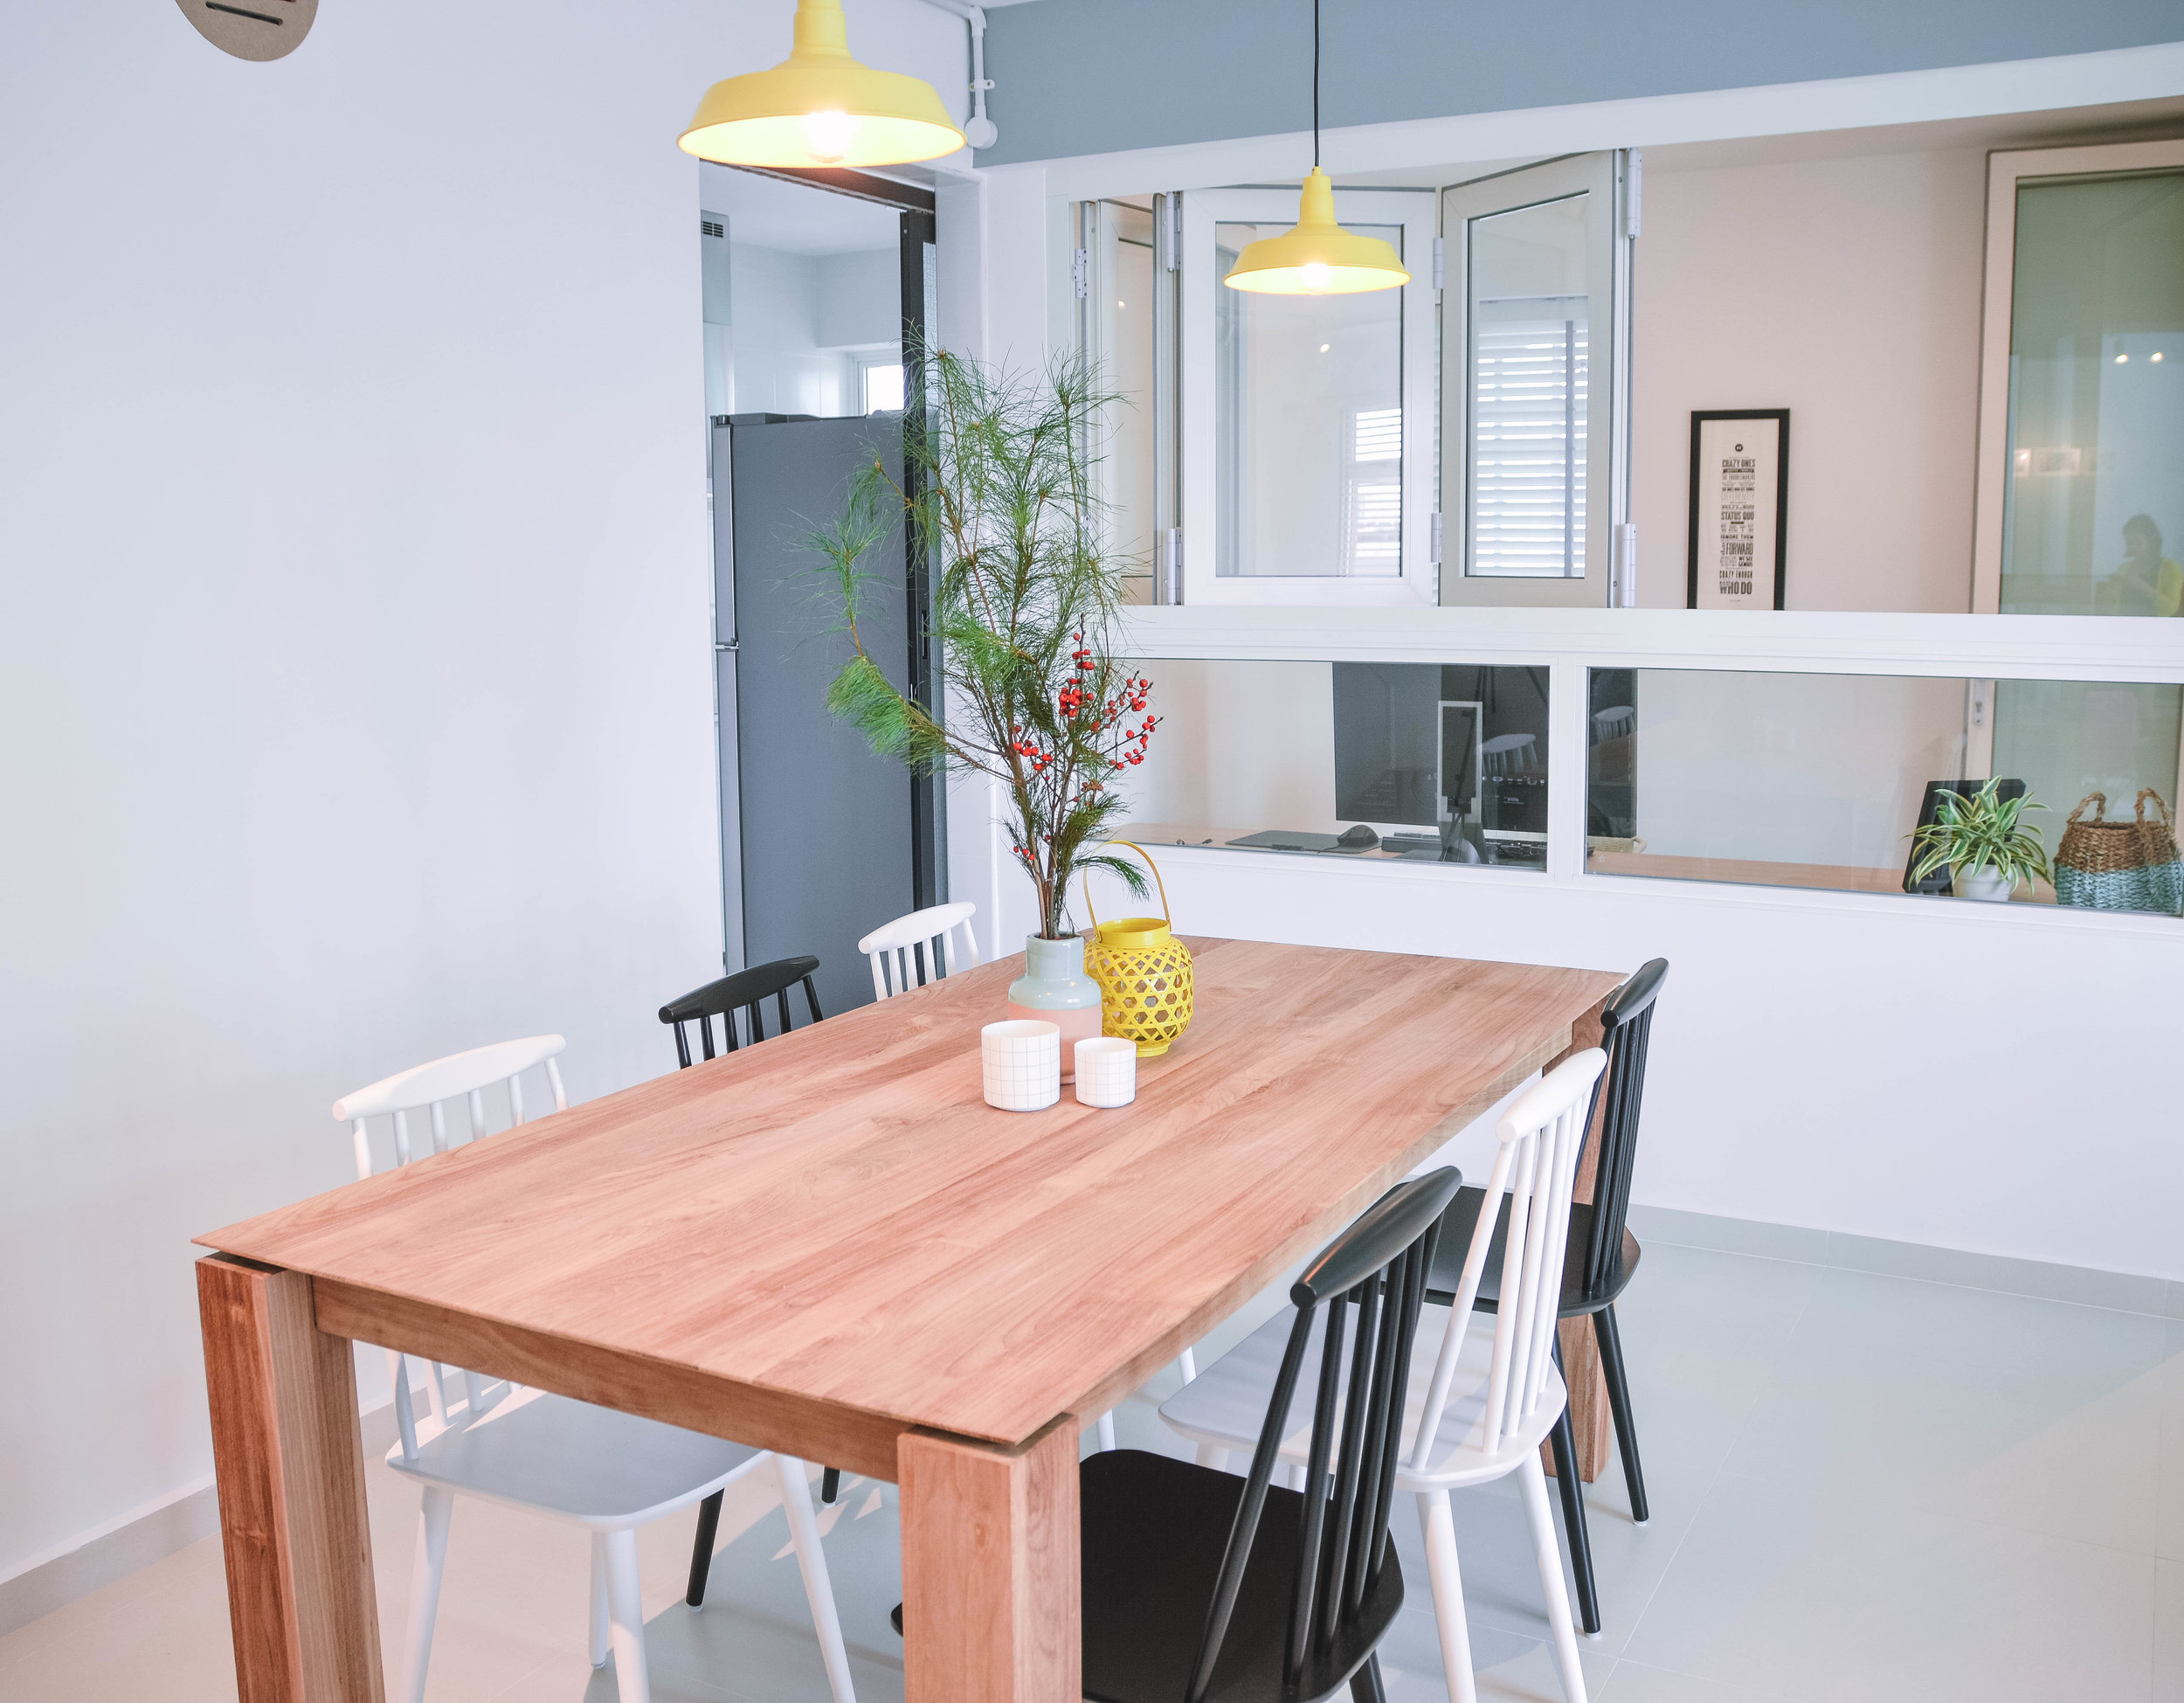 Wooden Dining Table Interior Design